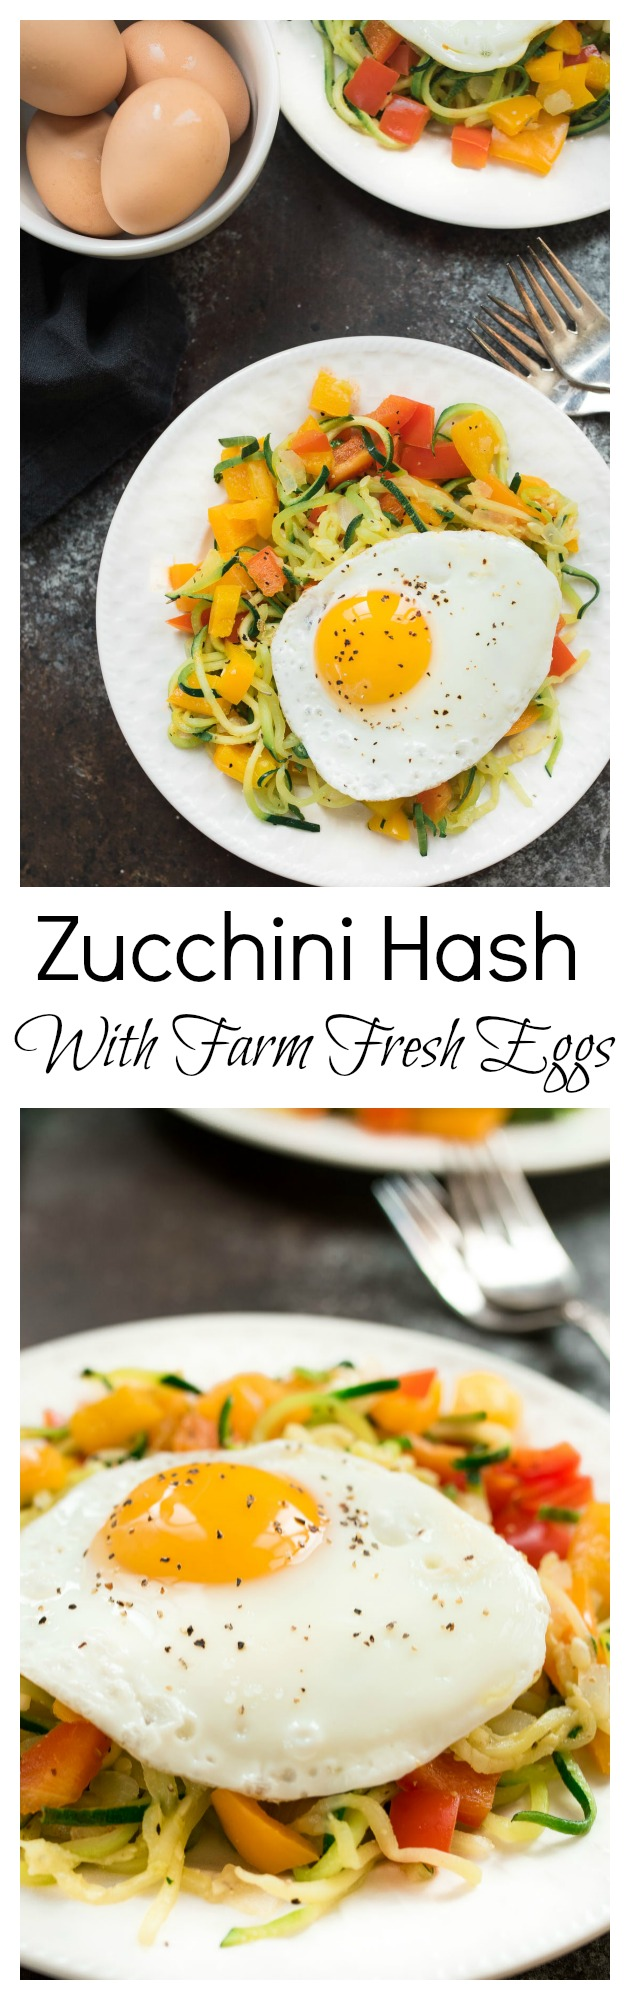 Zucchini Hash With Farm Fresh Eggs- super simple and highly nutritious breakfast! #glutenfree | www.nutritiouseats.com